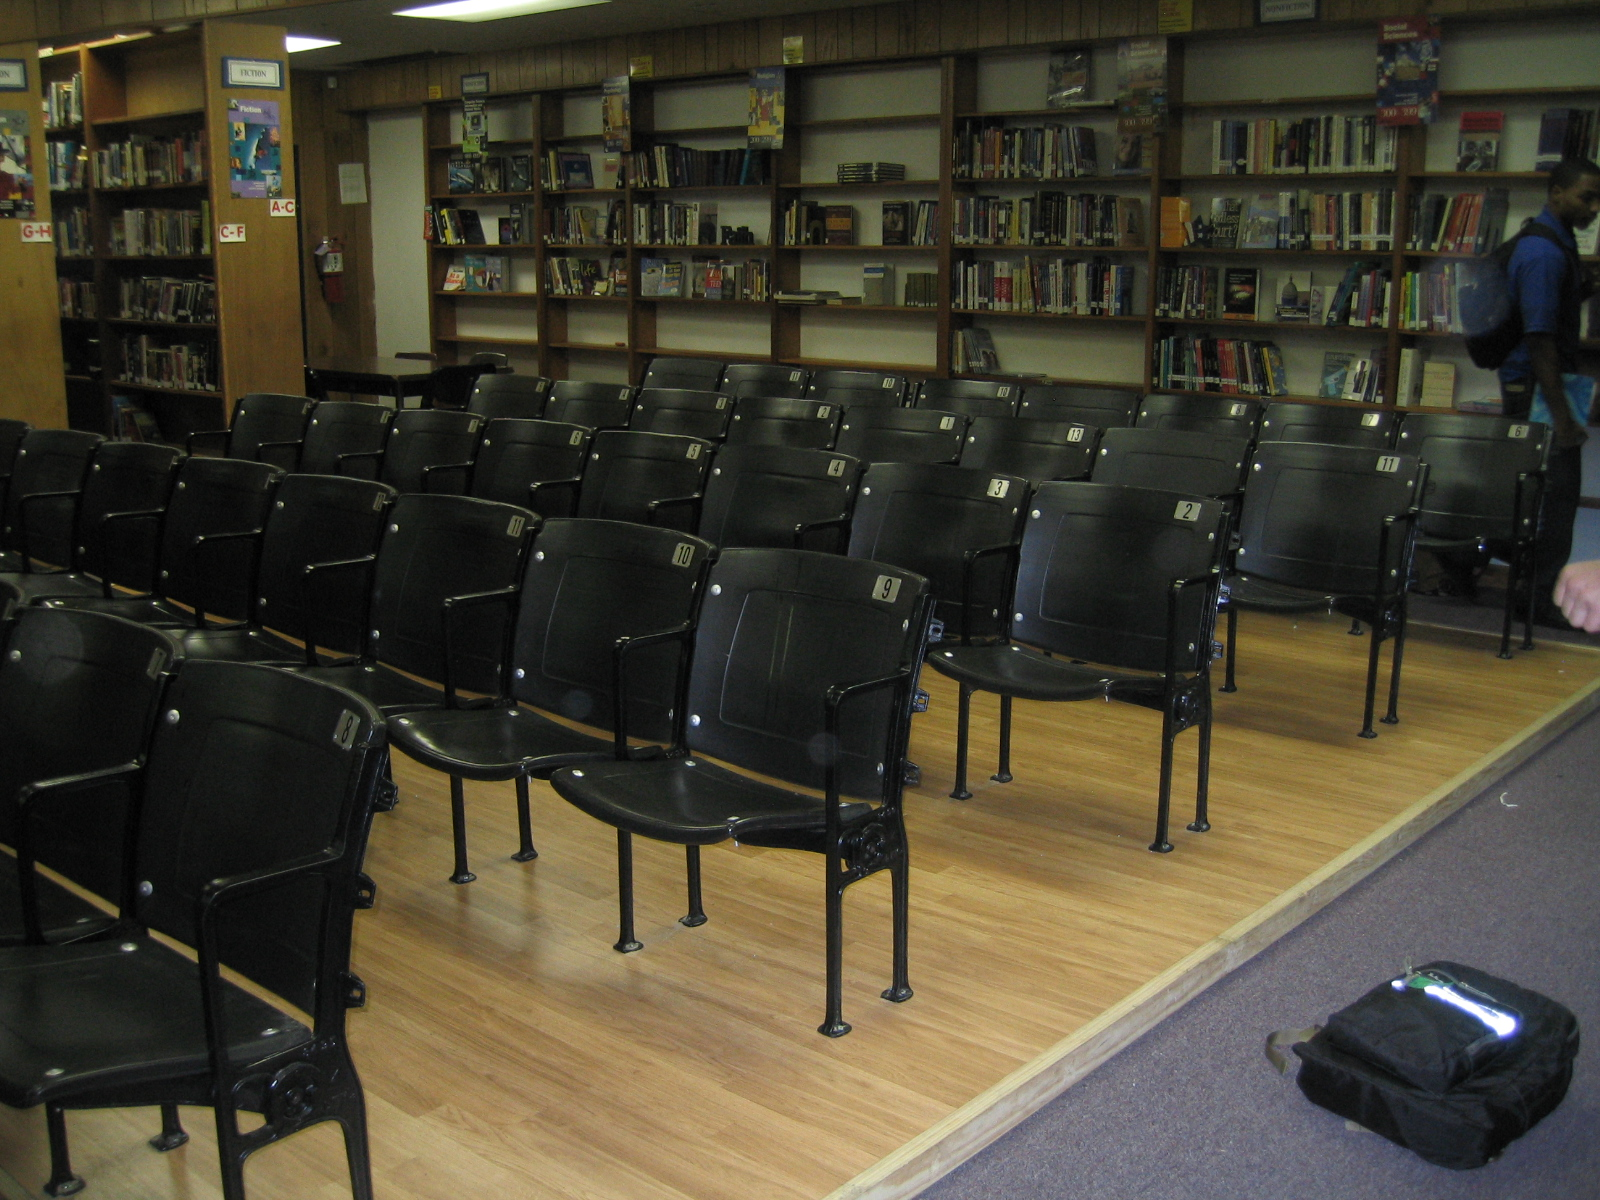 AV room in library at John Curtis Christian HS